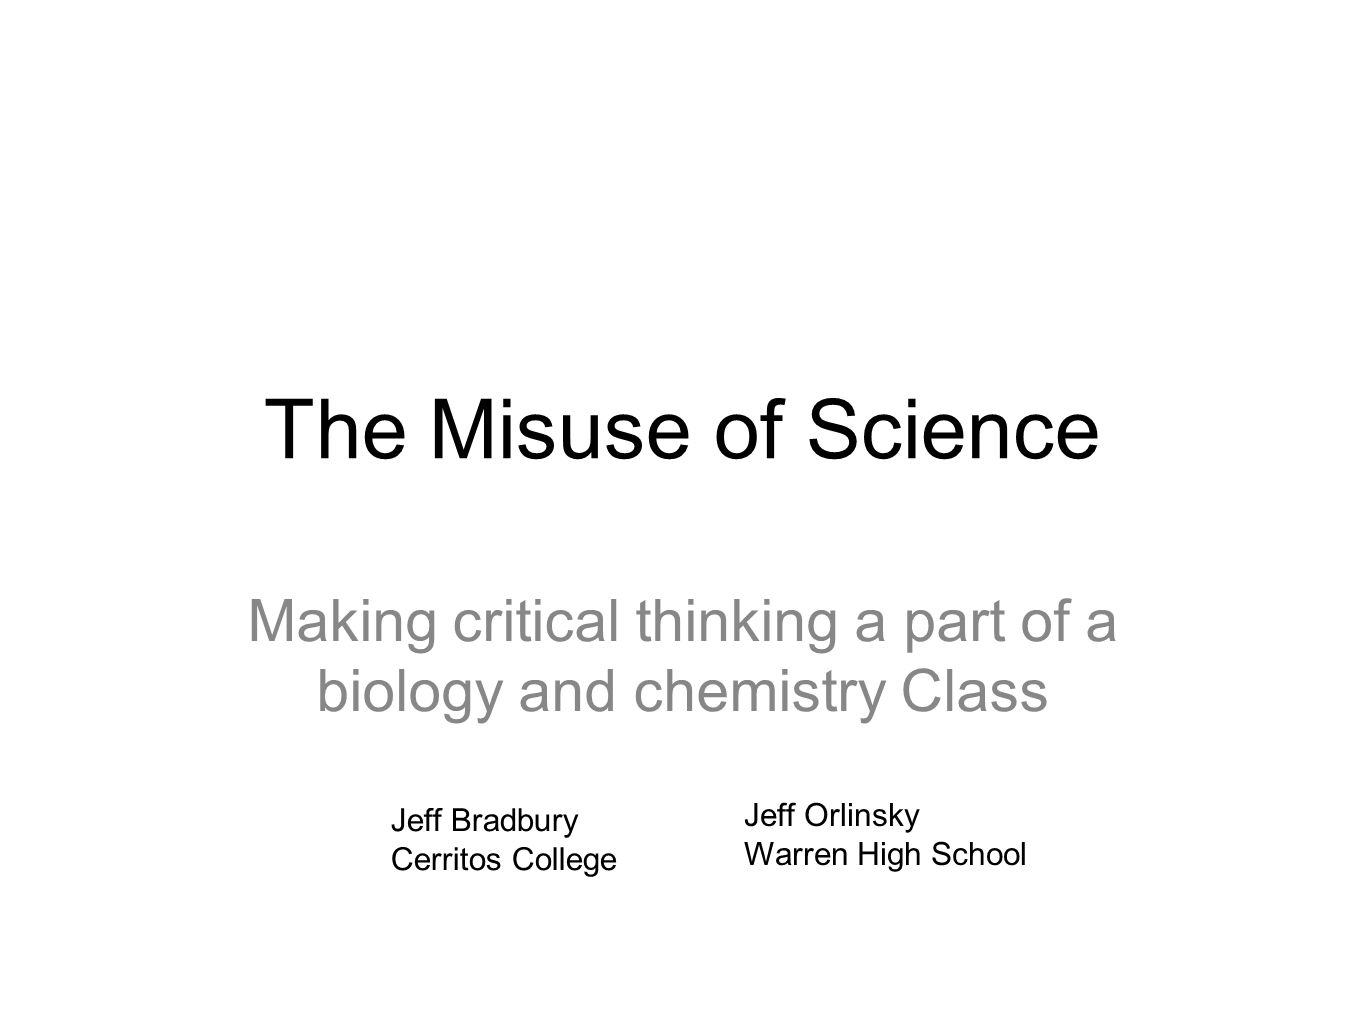 The Misuse of Science Making critical thinking a part of a biology and chemistry Class Jeff Bradbury Cerritos College Jeff Orlinsky Warren High School